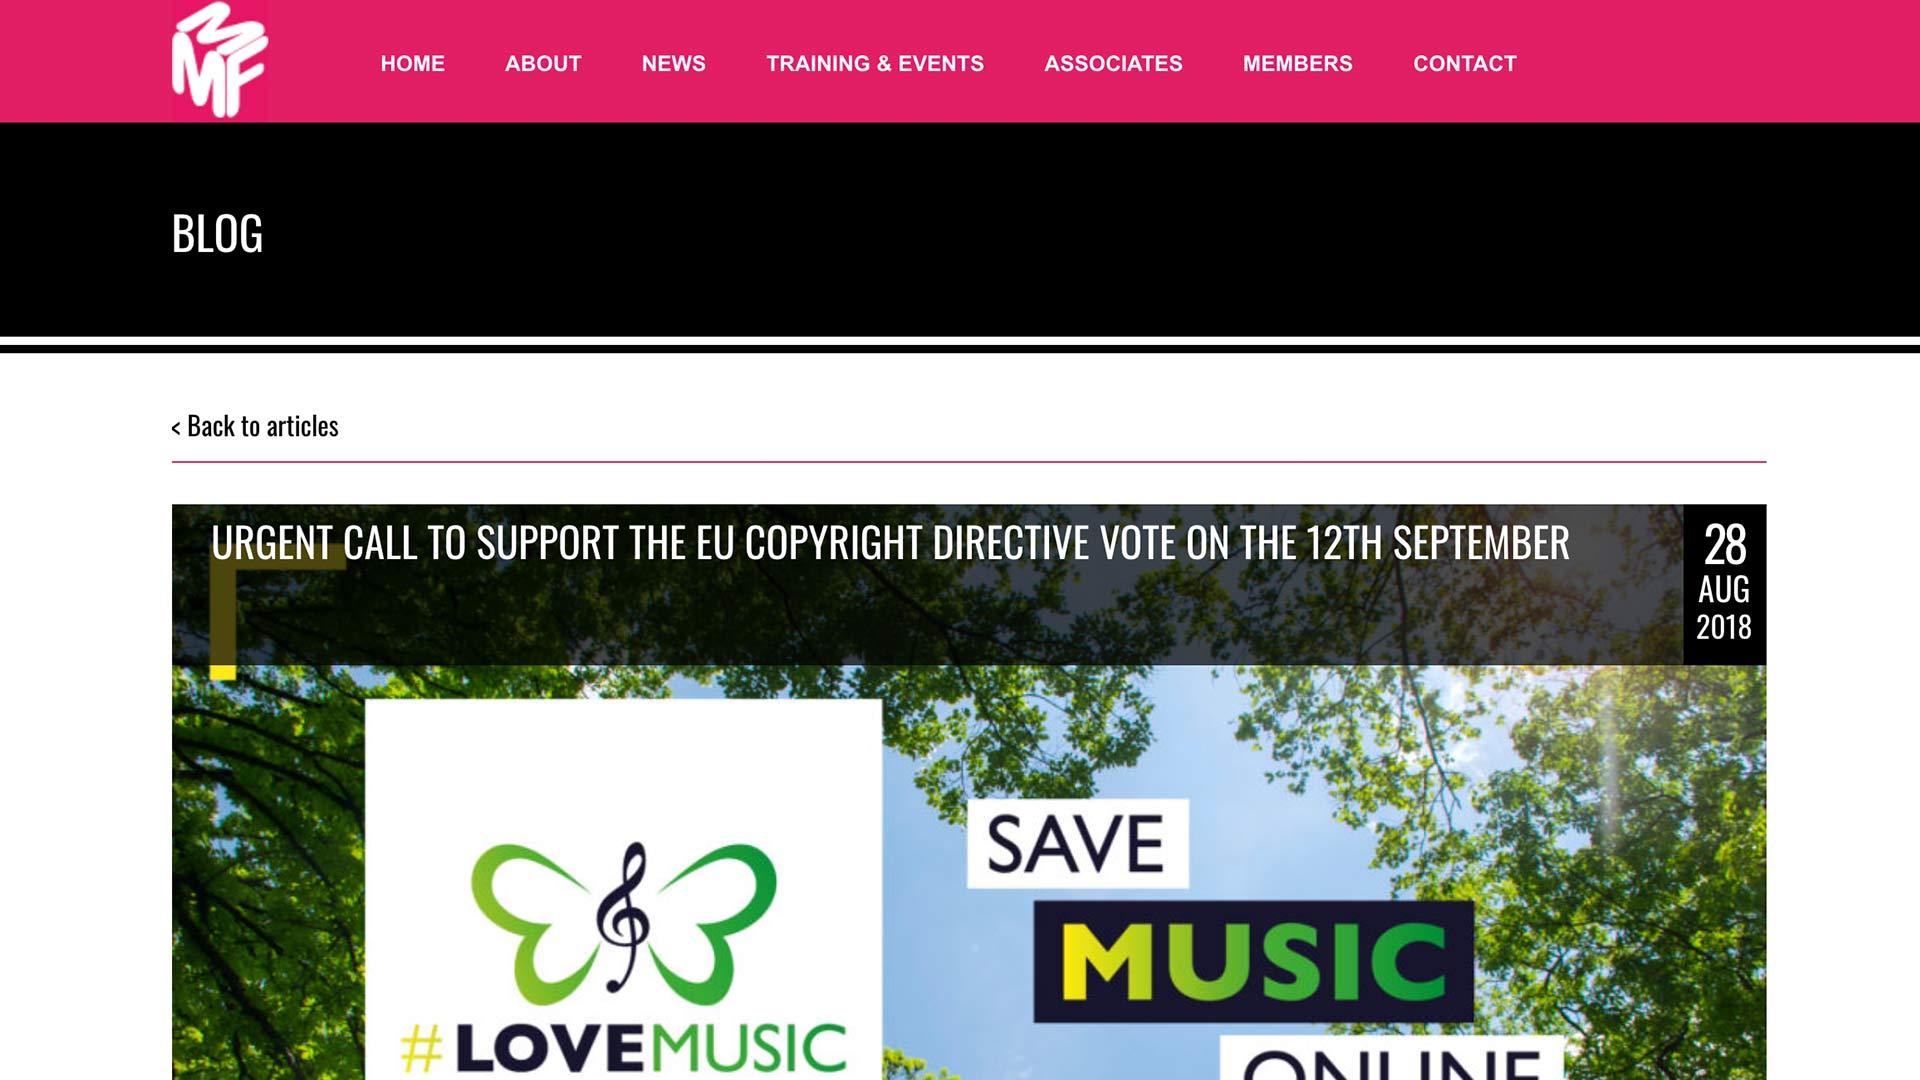 Fairness Rocks News URGENT CALL TO SUPPORT THE EU COPYRIGHT DIRECTIVE VOTE ON THE 12TH SEPTEMBER